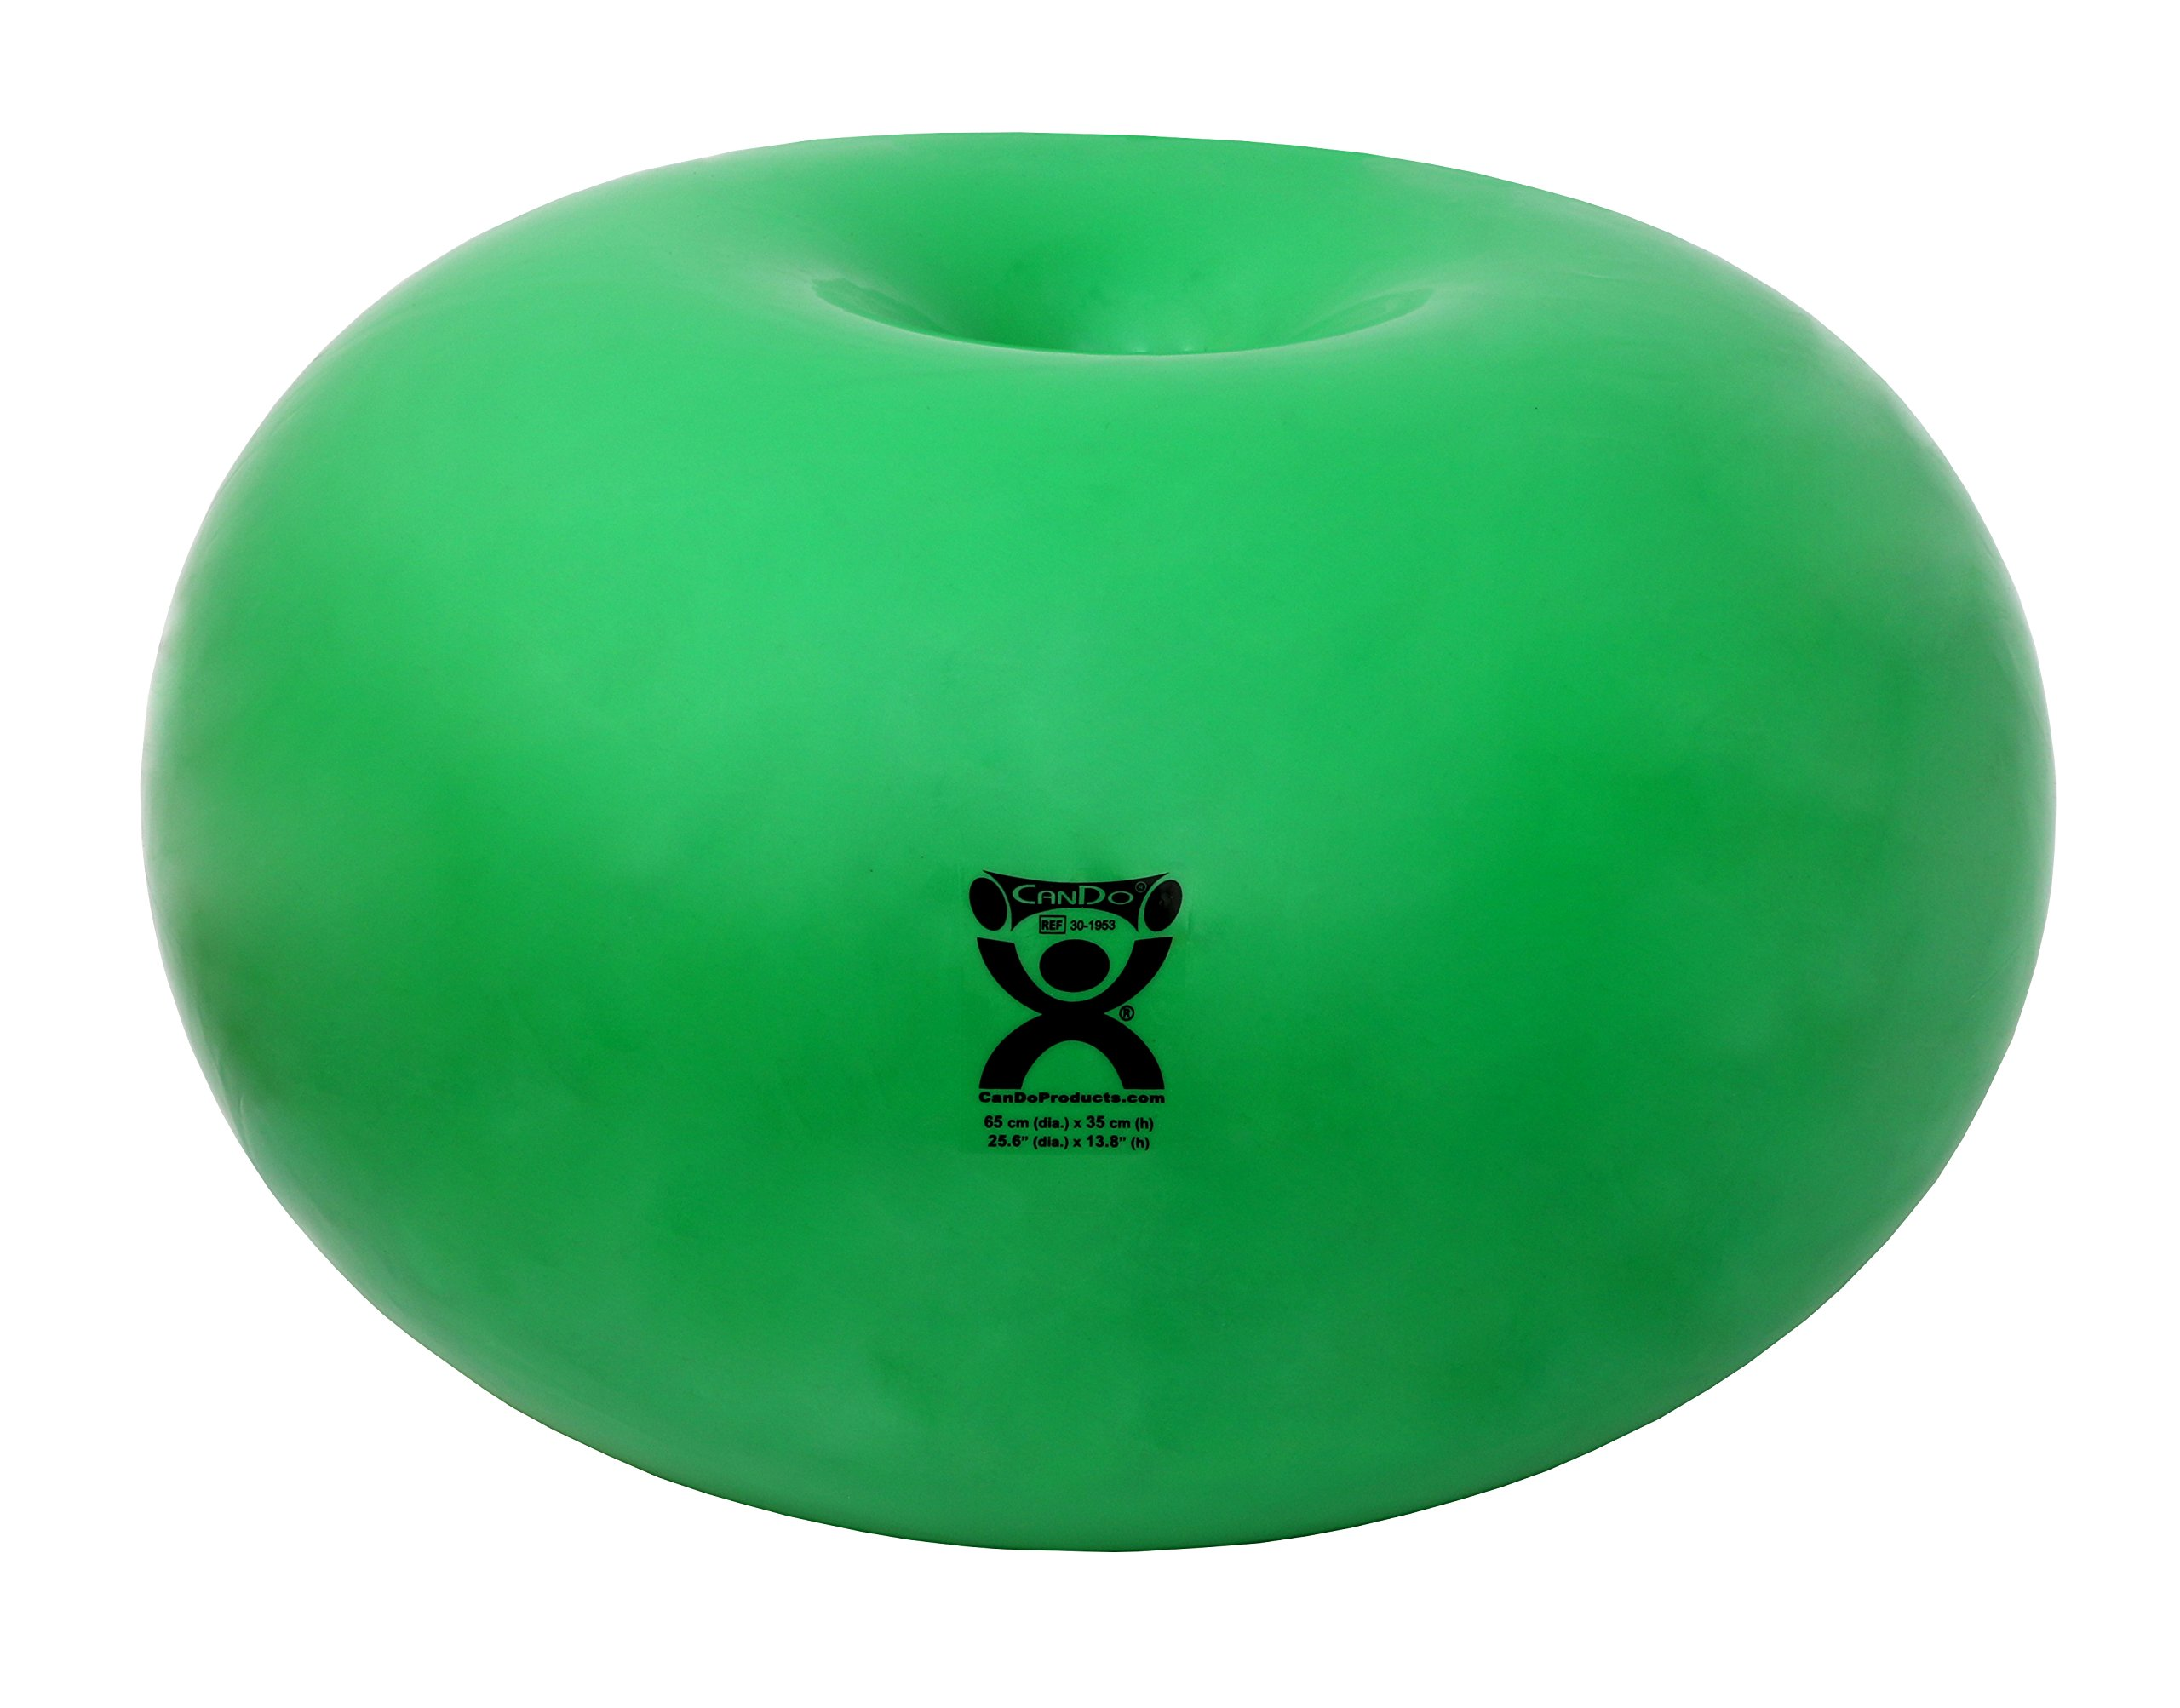 CanDo Donut Exercise, Workout, Core Training, Swiss Stability Ball for Yoga, Pilates and Balance Training in Gym, Office or Classroom. Green, 65 cm W x 35 cm by Cando